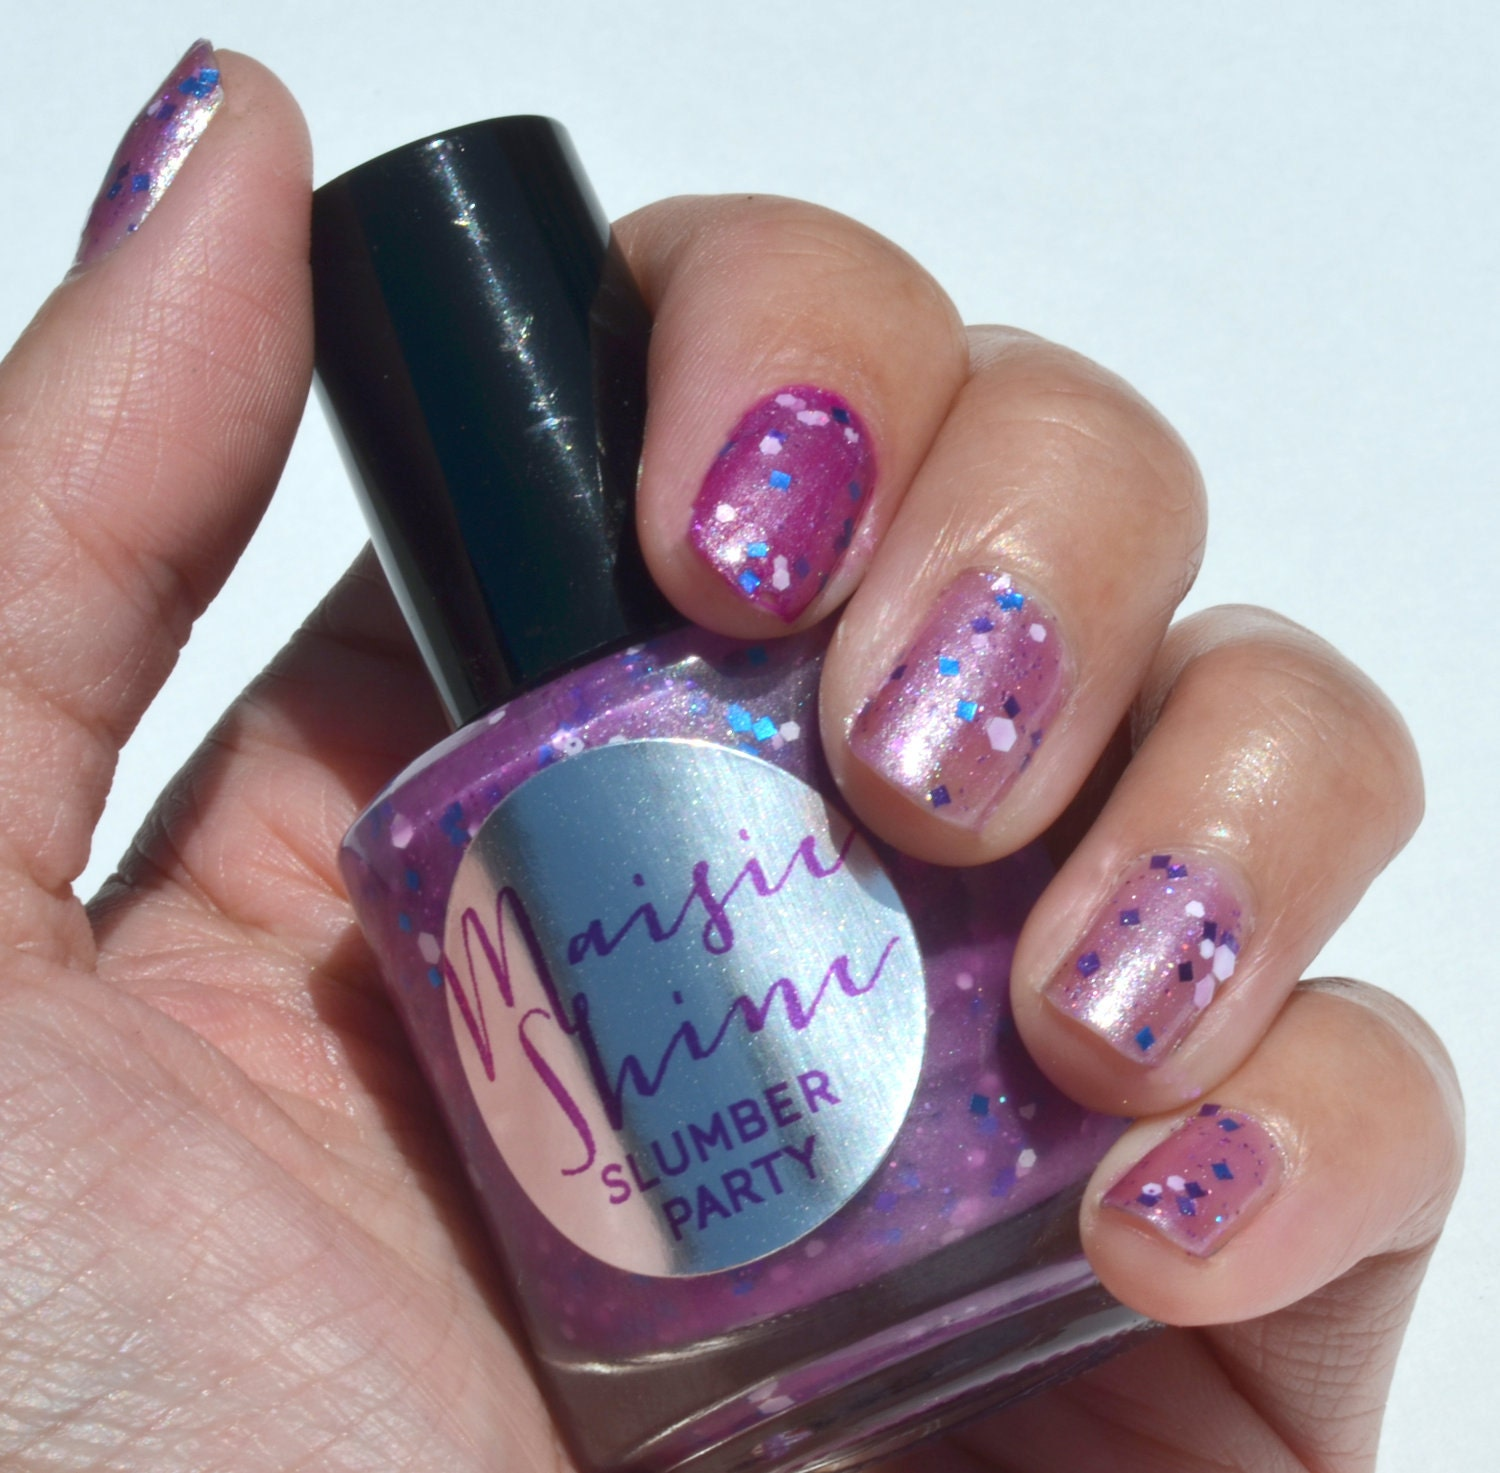 Nail Polish Bottles Fun Sleepover Games And Sleepover: Nail Polish: Slumber Party Purple With White And By